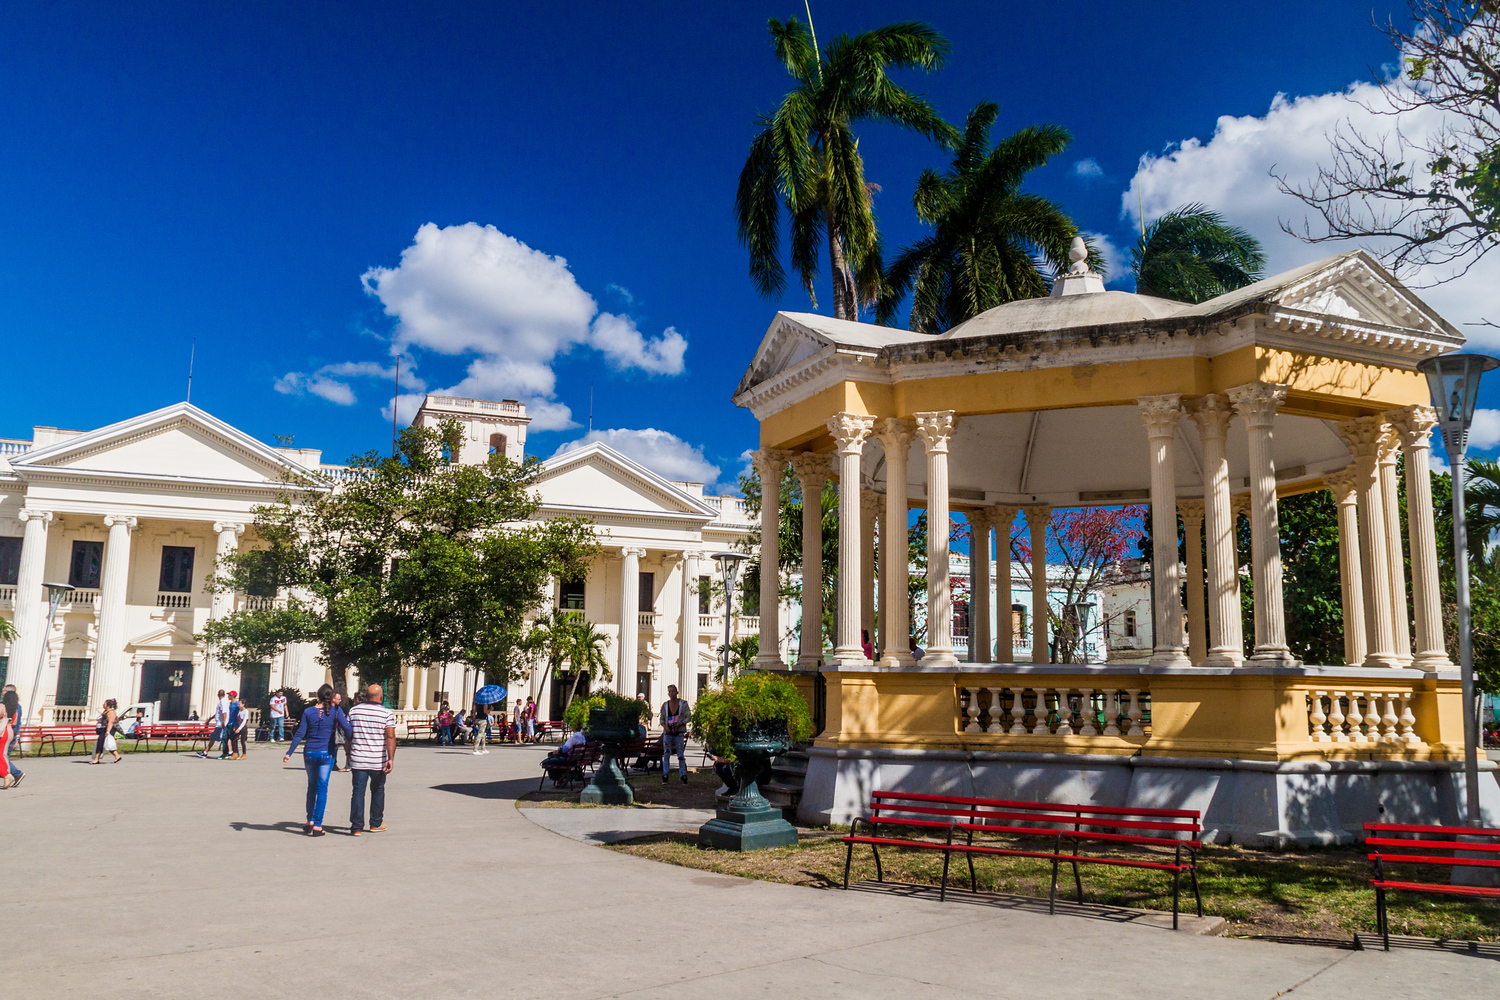 Parque Vidal in Santa Clara Cuba is the central hub in this Cuban city.